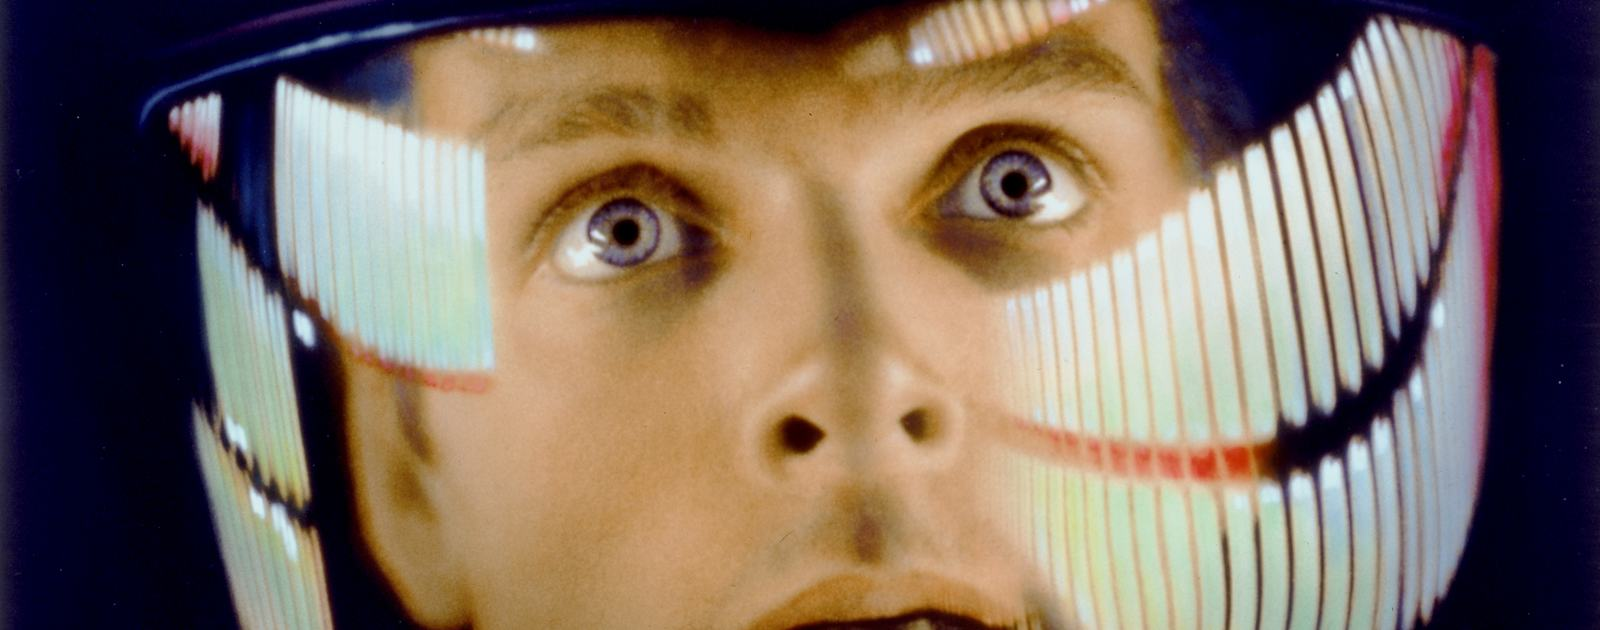 Still from the film 2001: A Space Odyssey, which is part of Southbank Centre's Touring Programme